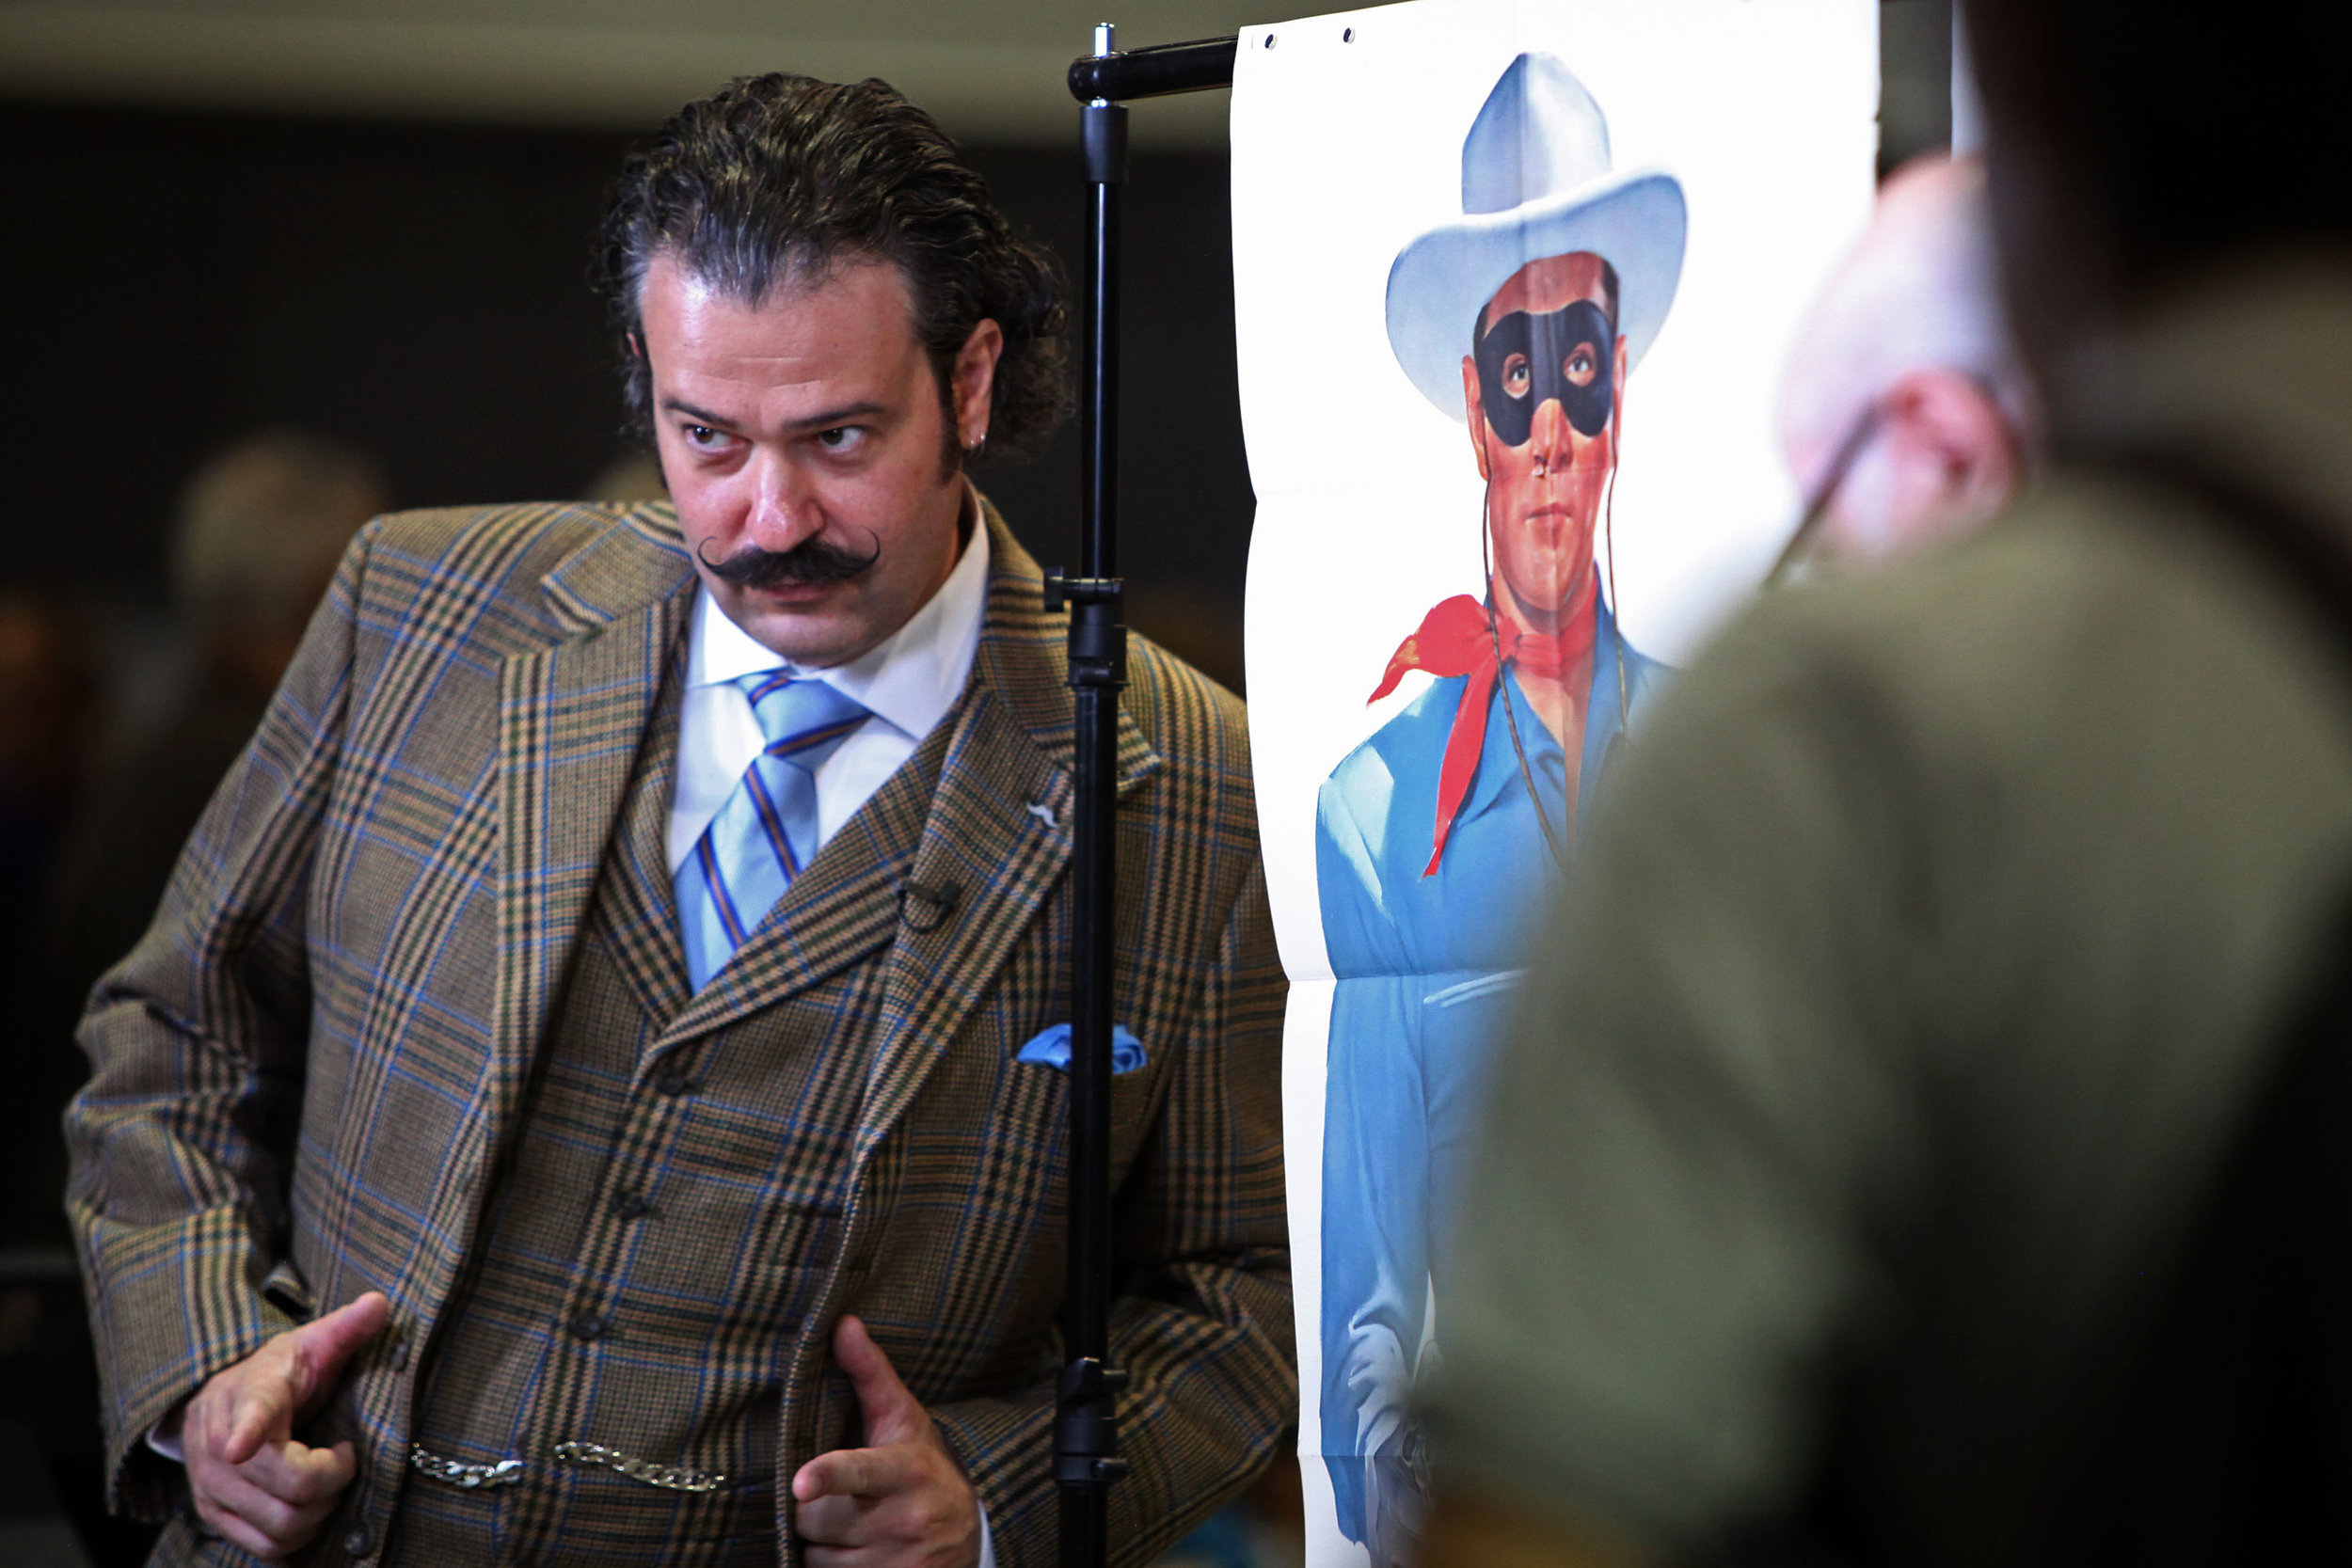 Nicholas Lowry, at left, a vintage poster specialist and appraiser from New York City, poses with a life-sized poster of the Lone Ranger that Tom, of Albuquerque, brought in to be appraised along with a matching poster of Tonto to the Antiques Roadshow at the Albuquerque Convention Center, July 19, 2014, in Albuquerque NM. After the appraisal, Lowry had an impromptu photo session of himself with the posters, including a few selfies. (Morgan Petroski/Journal)